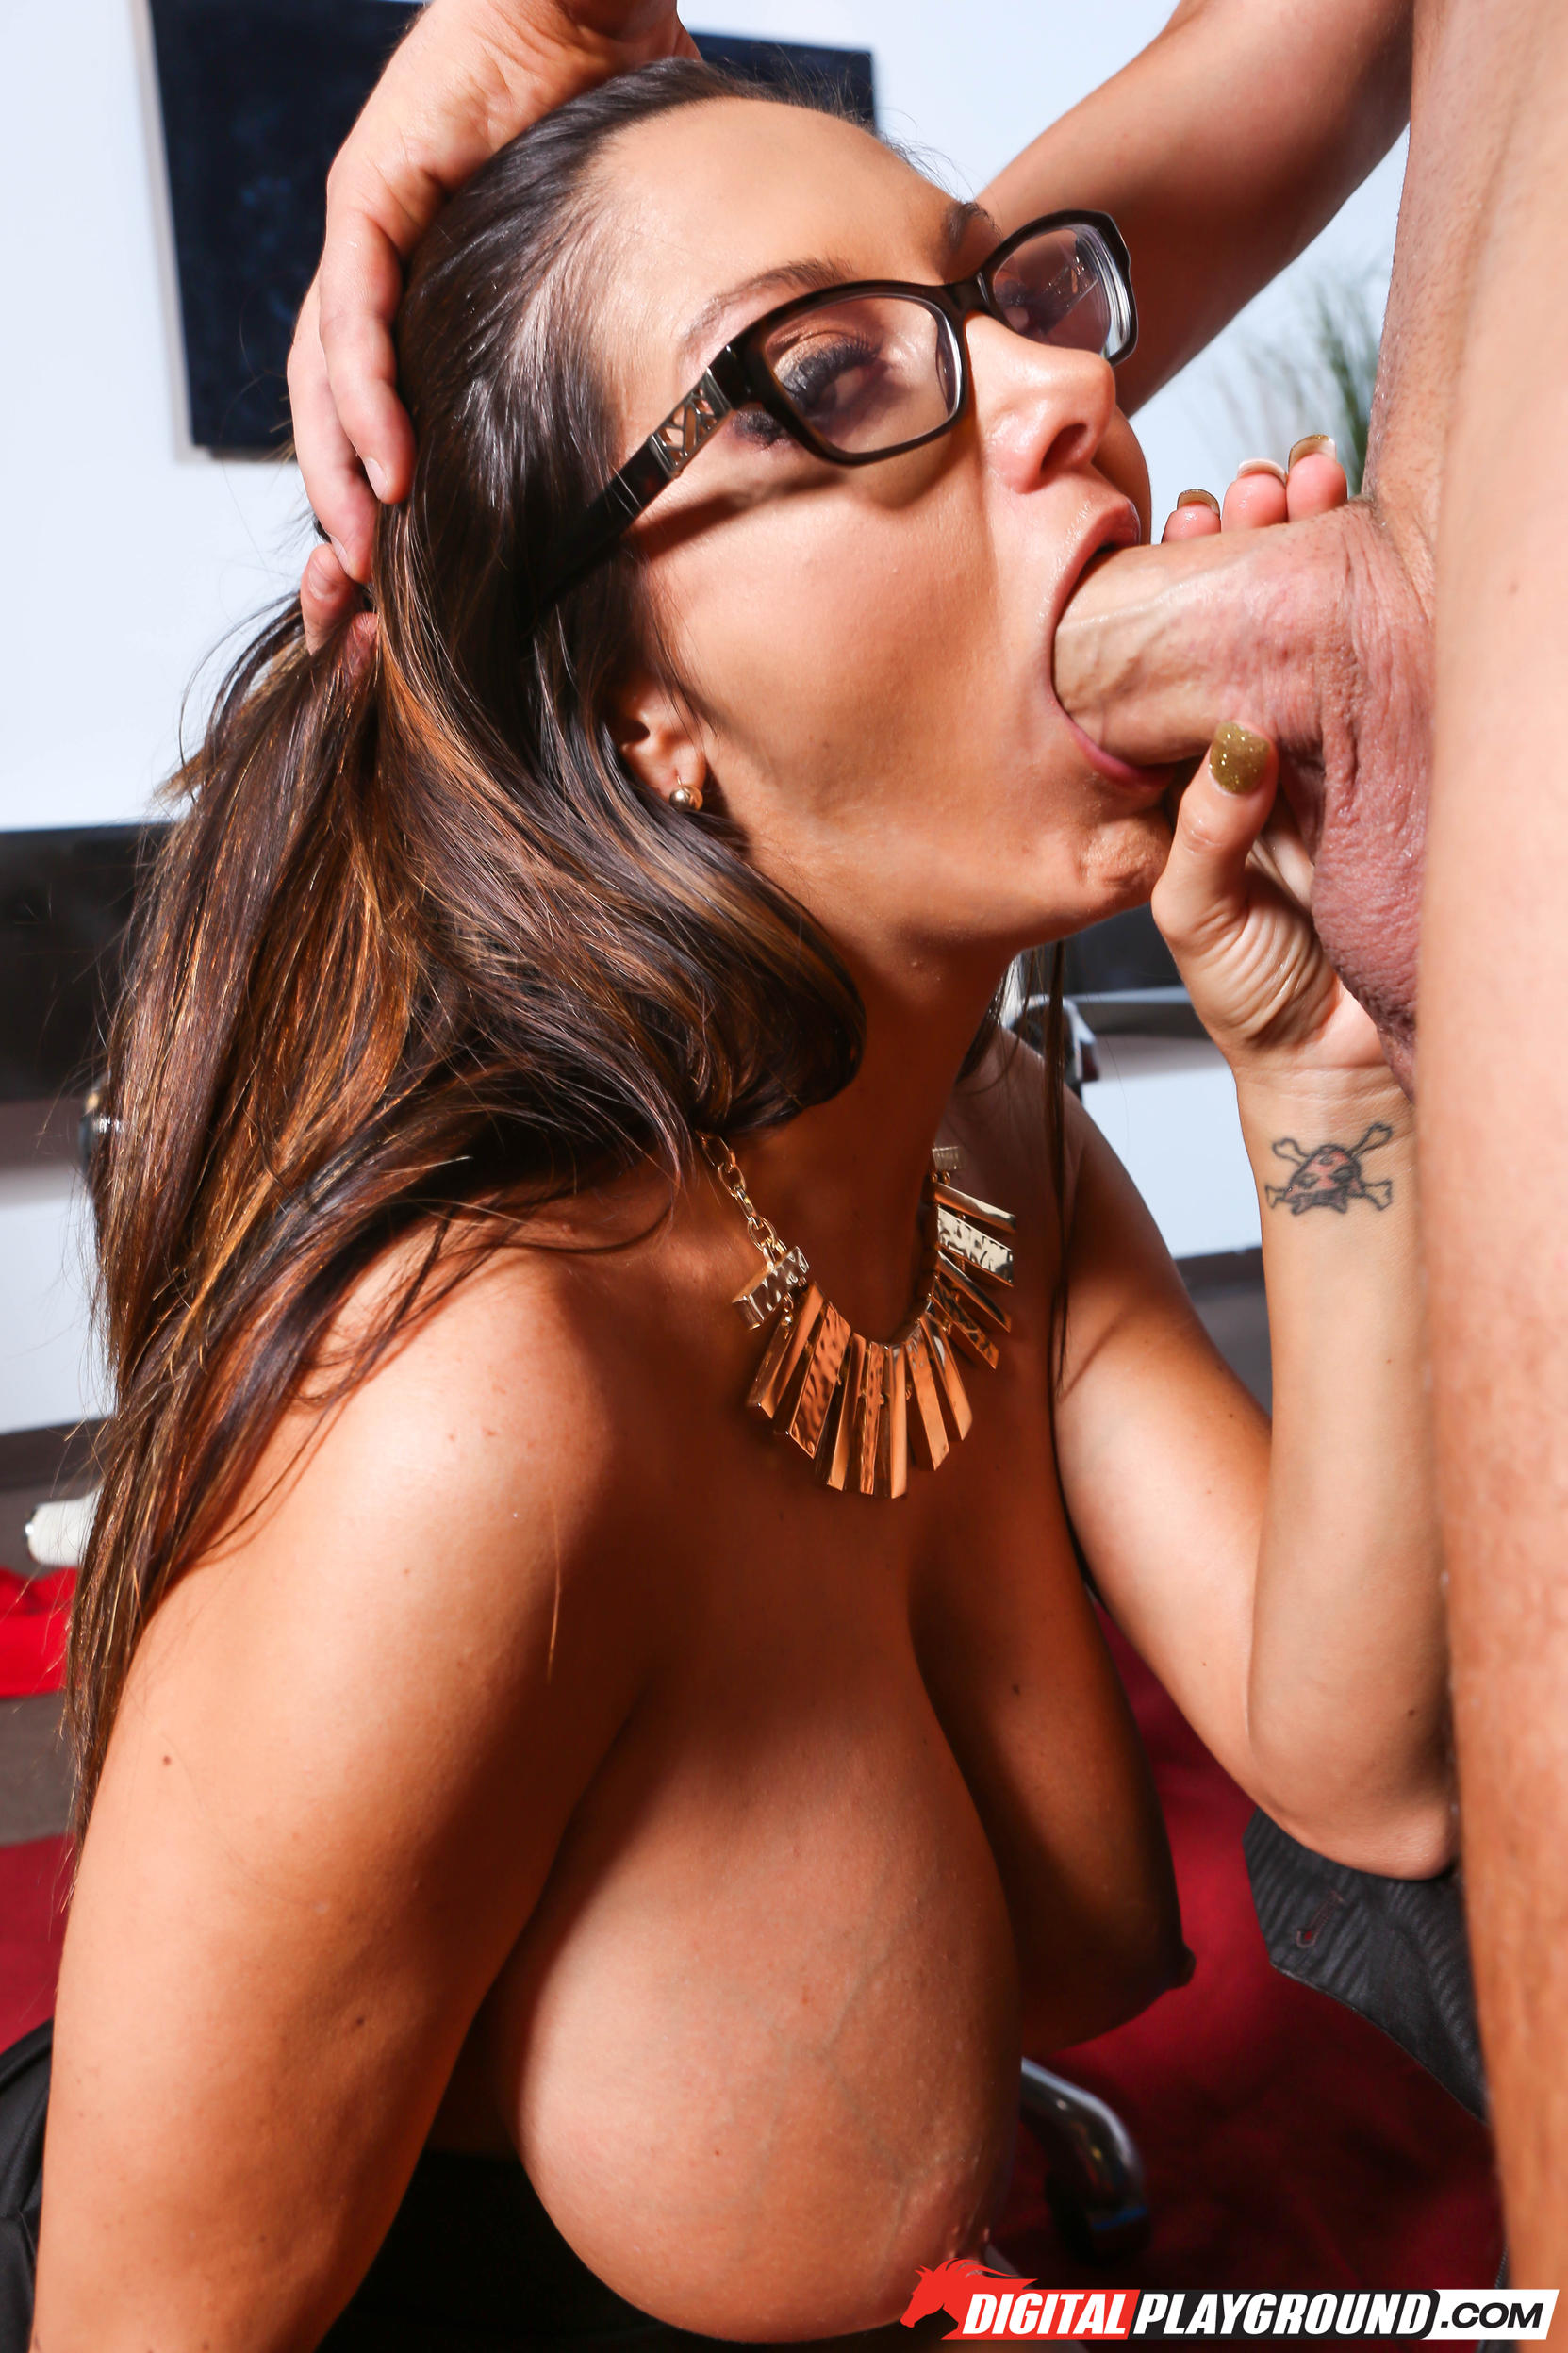 Ava adams blowjob